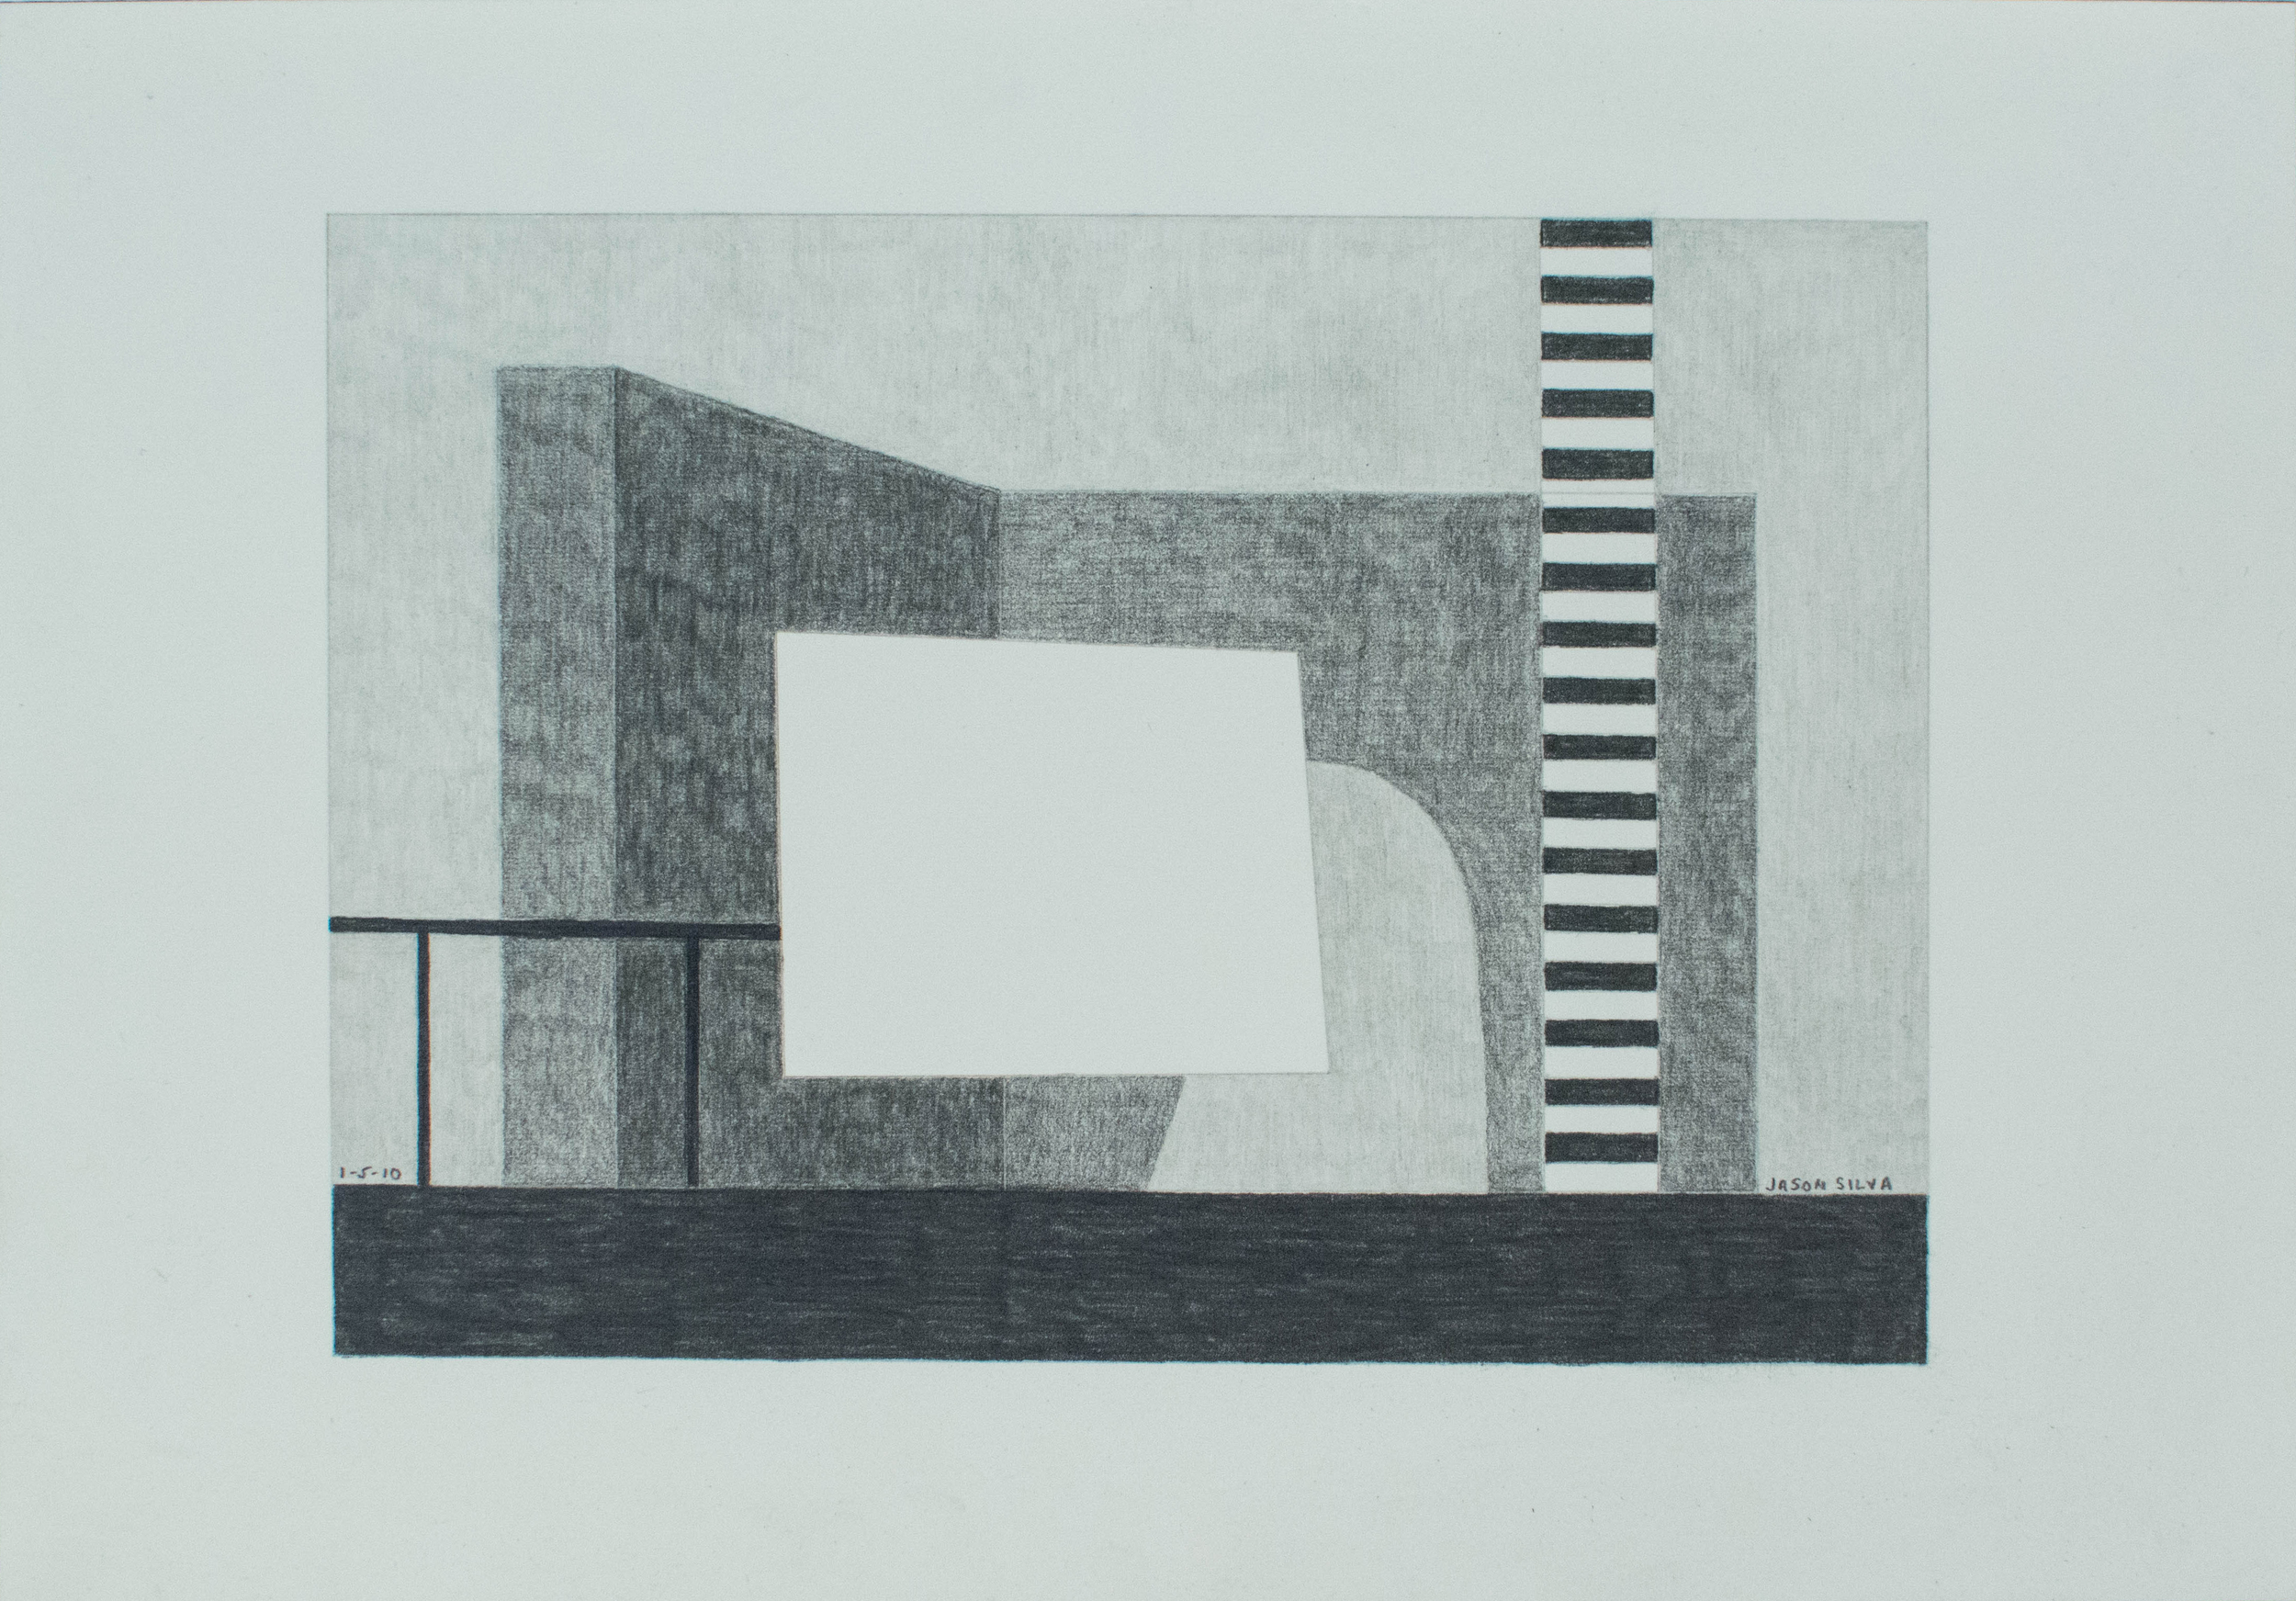 1-5-10, 2010, Graphite on paper, 7 x 10 inches